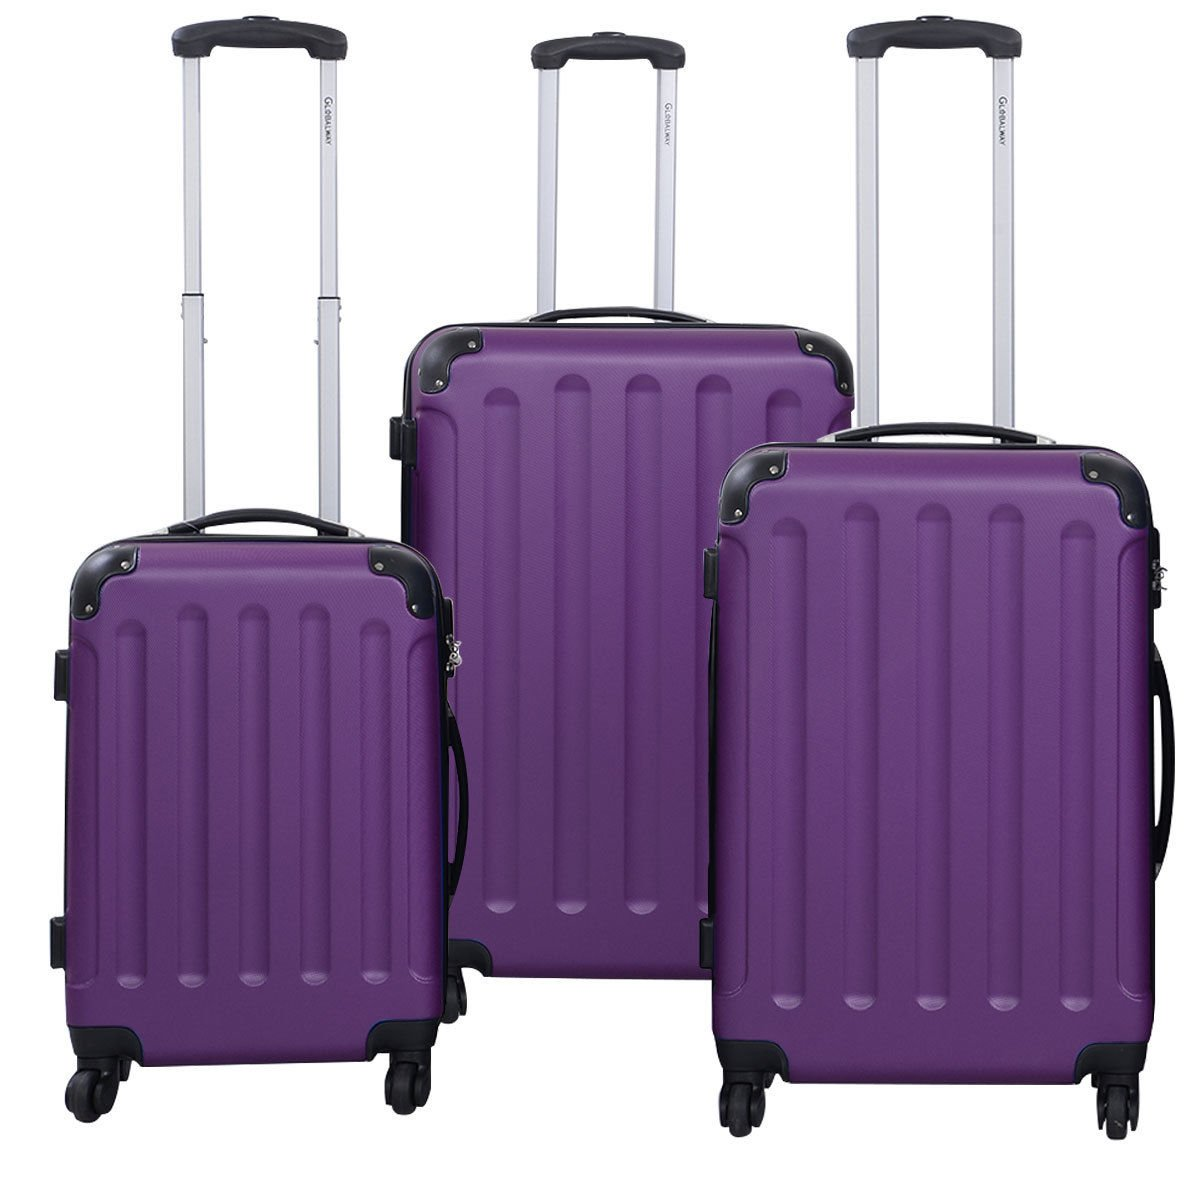 3 Pcs Luggage Travel Set Bag ABS+PC Trolley Suitcase Purple by tamsun